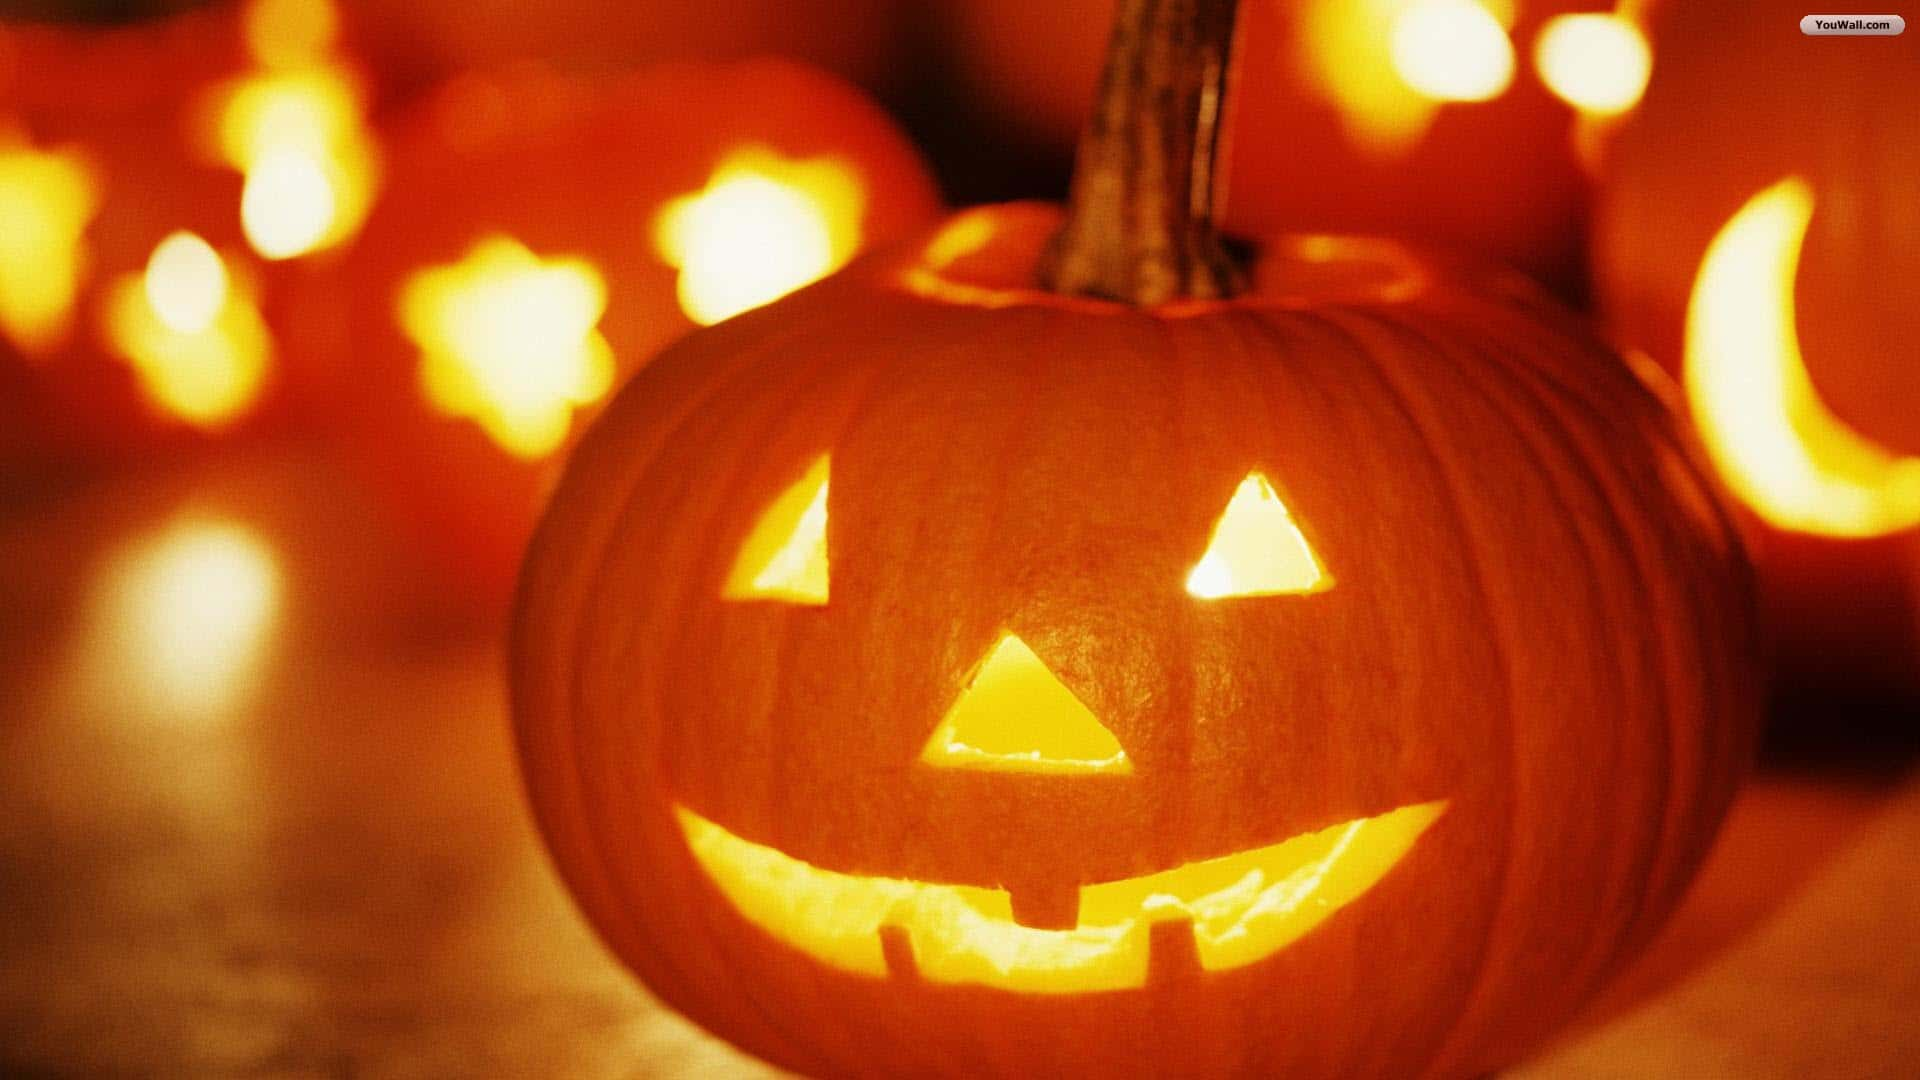 Cool Pumpkin Halloween Backgrounds 2017